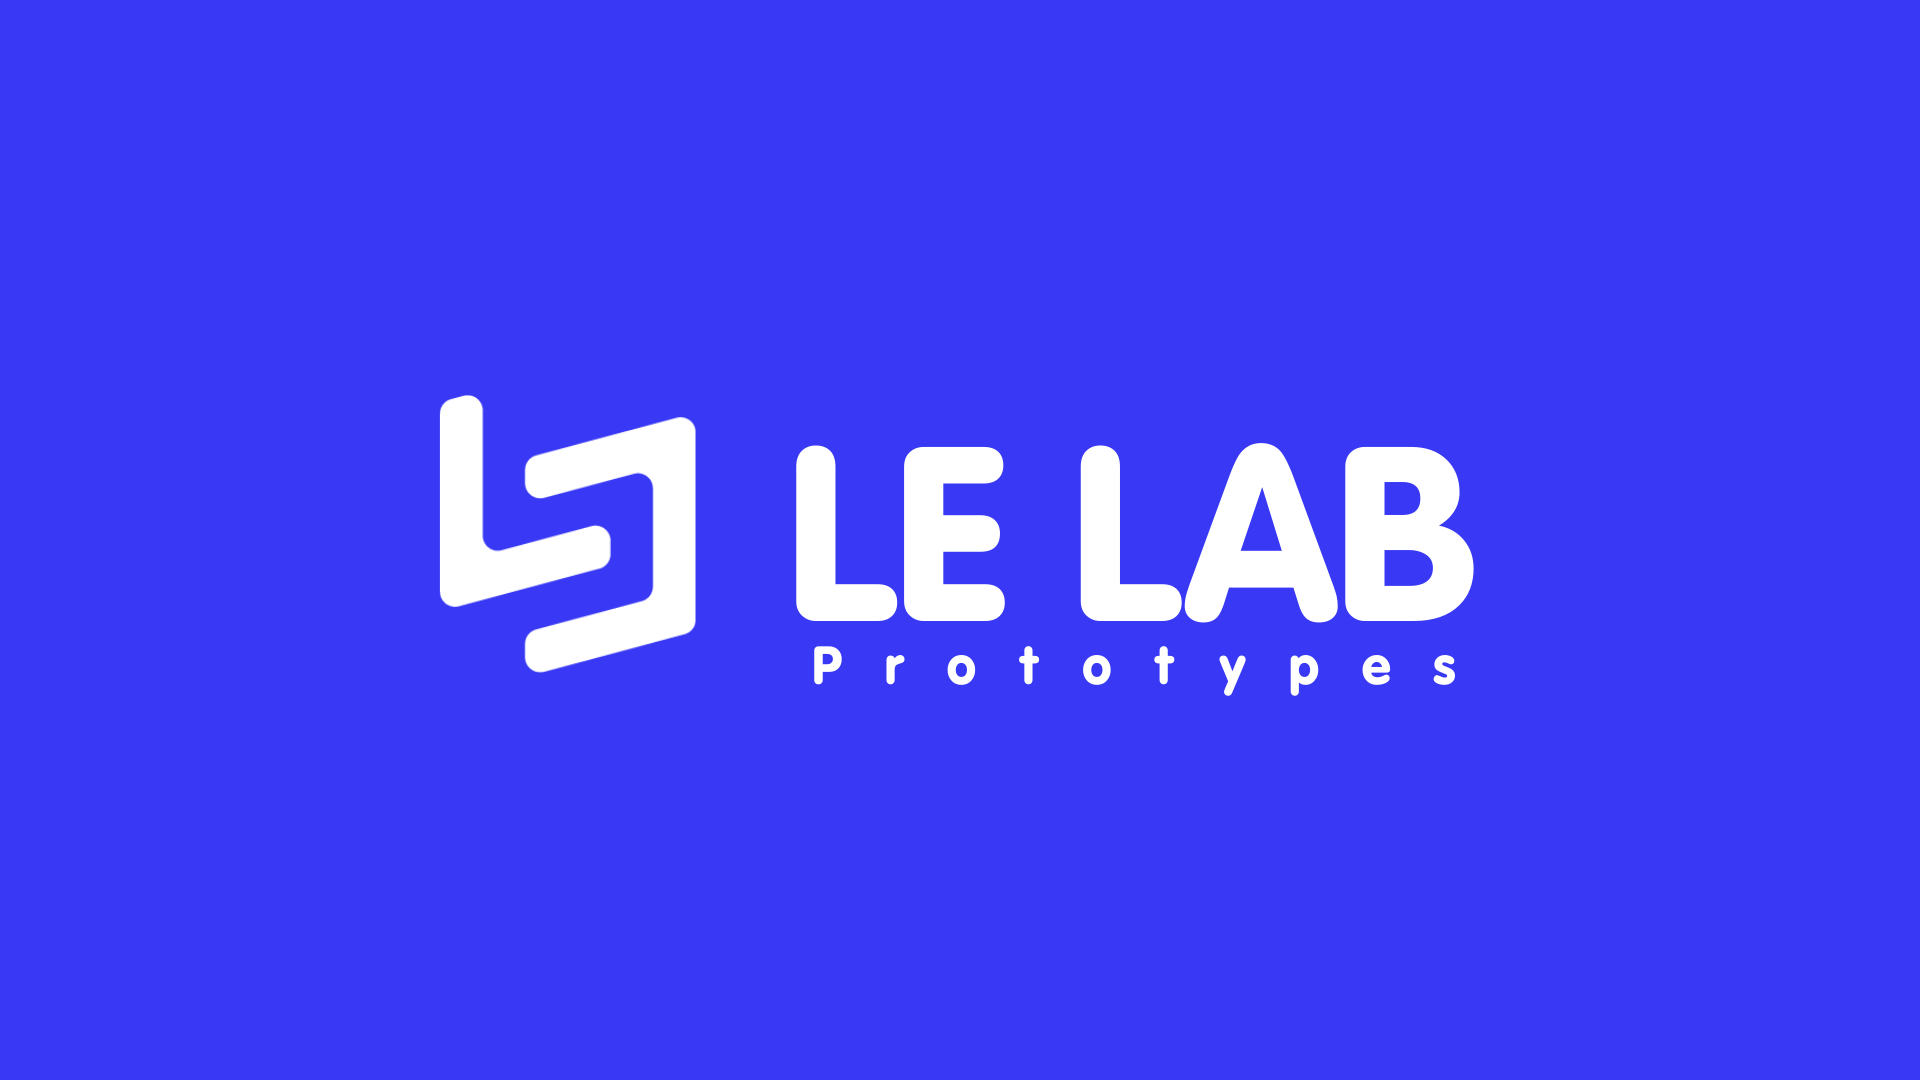 Prototype lexical